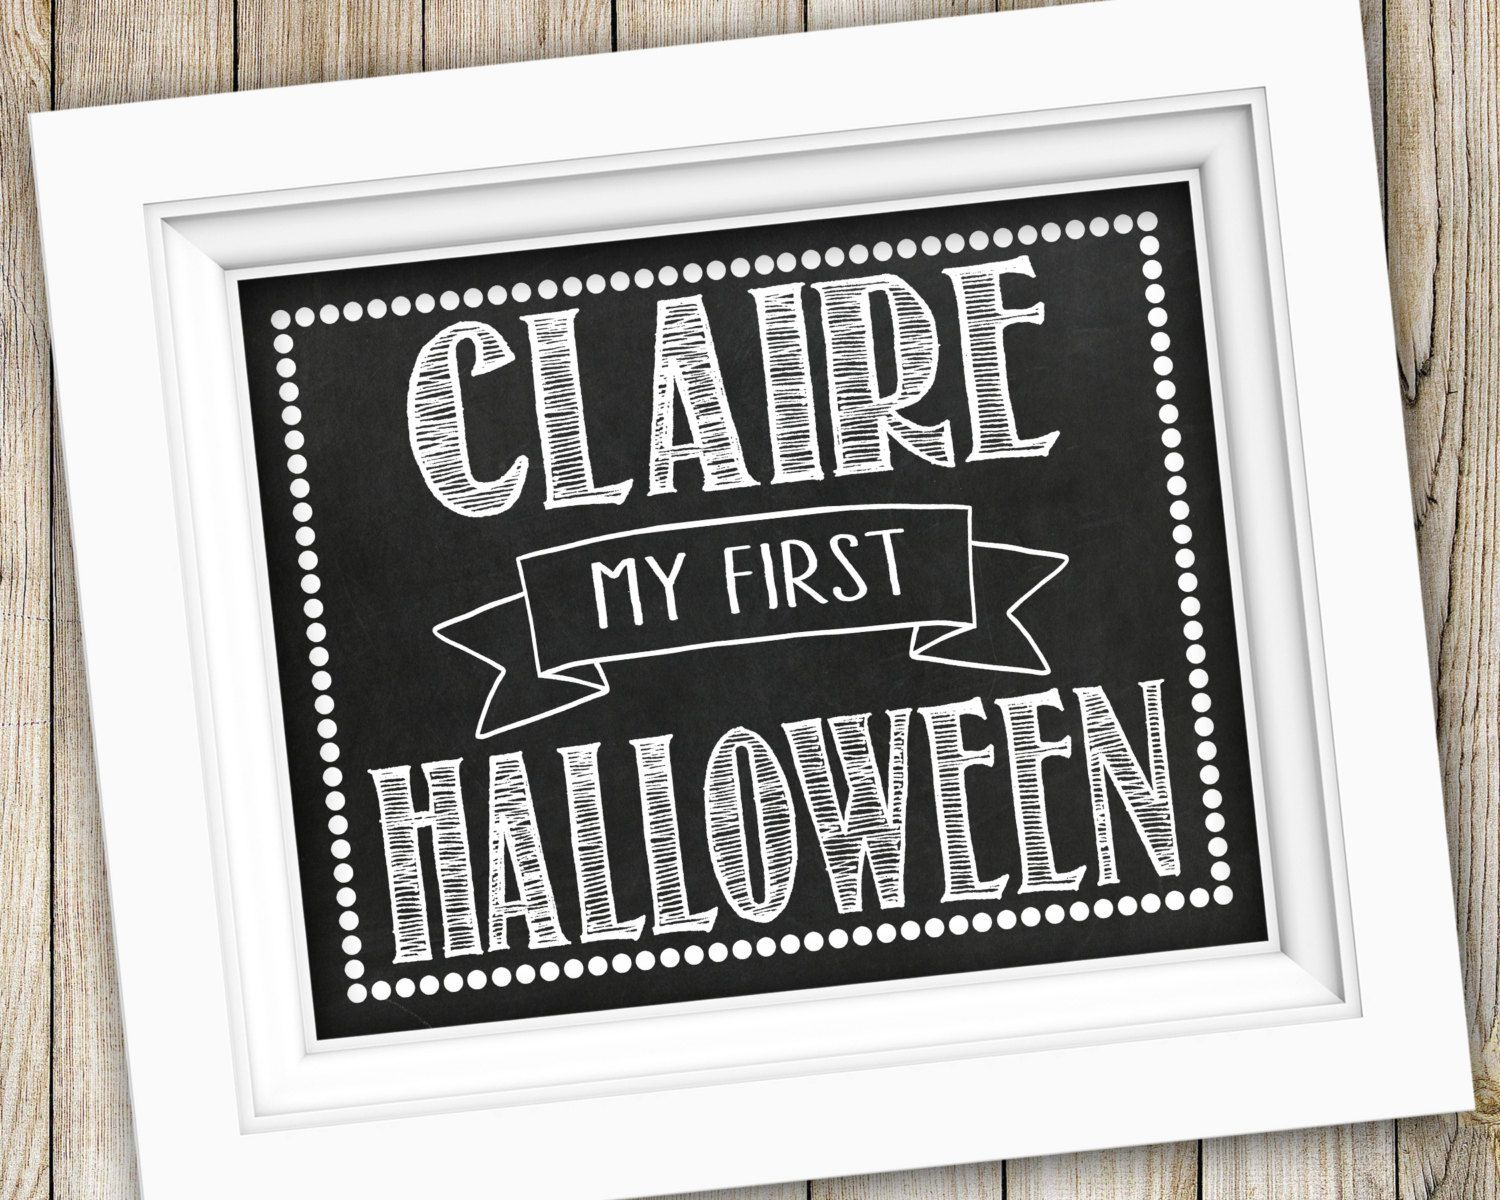 My First Halloween Printable ~ Personalized Baby's First Halloween Sign ~ Printable Halloween Photo Prop ~ Chalkboard Halloween Poster Print by SubwayStyle on Etsy